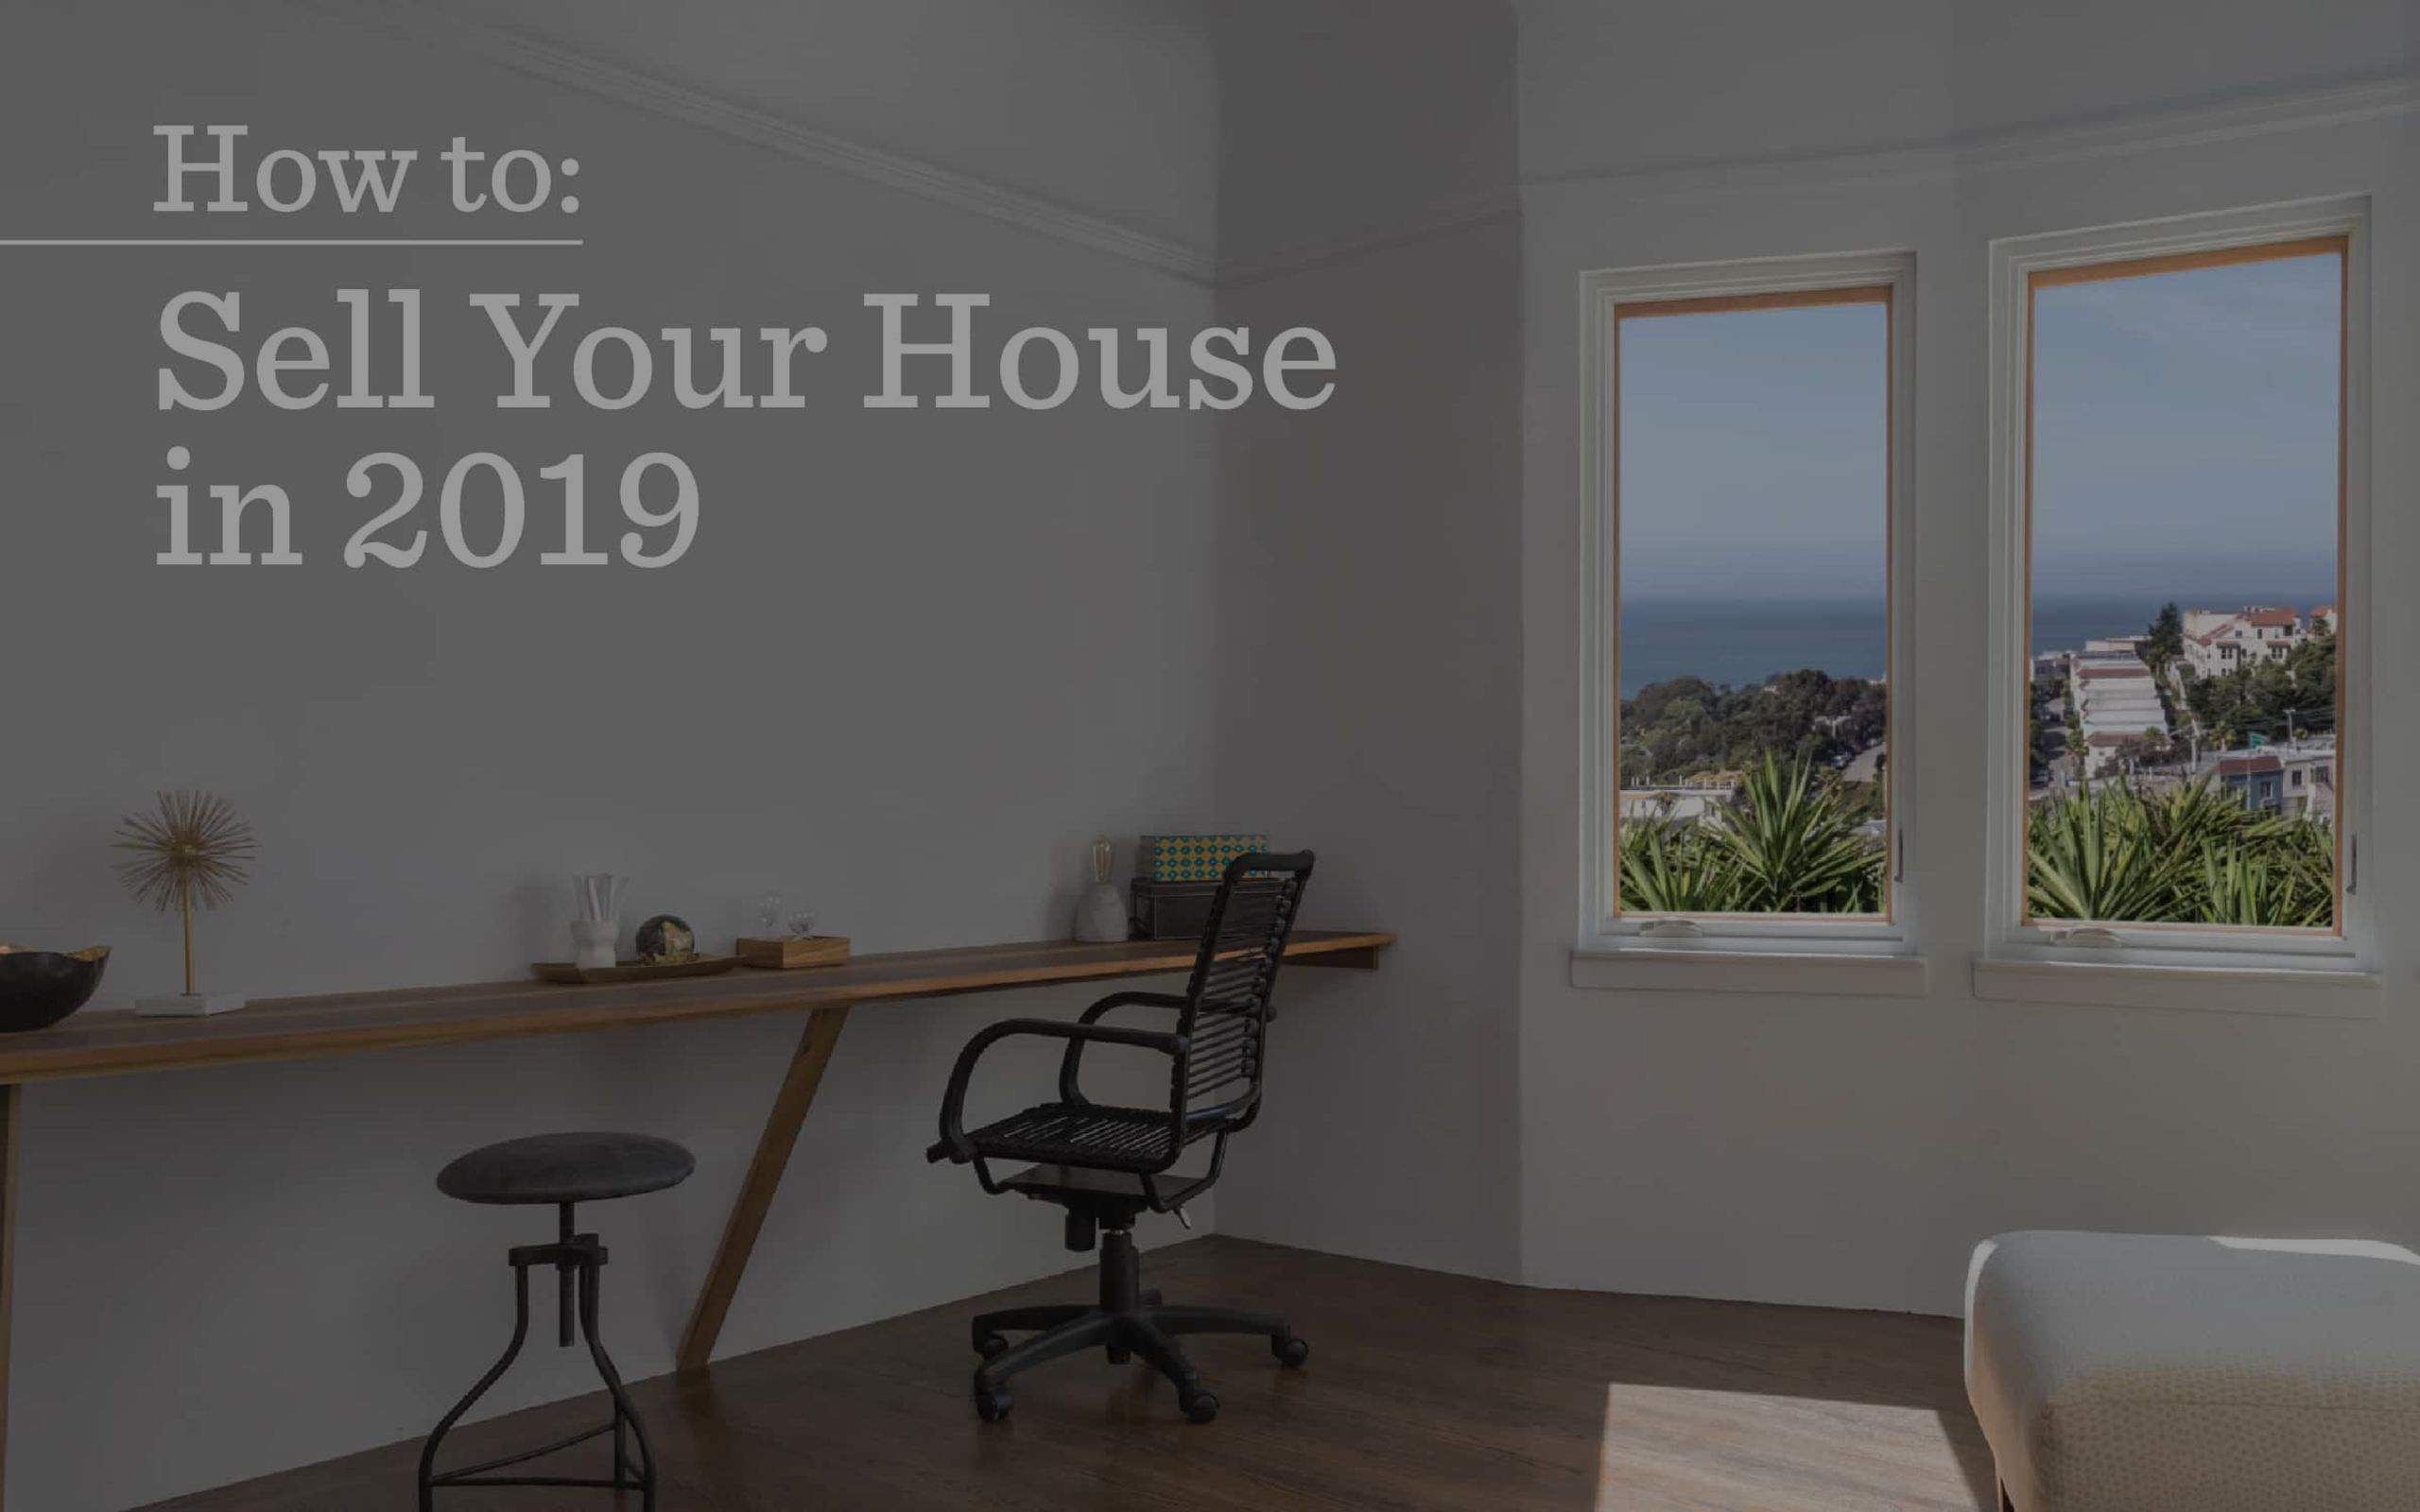 How to Sell Your Home in 2019